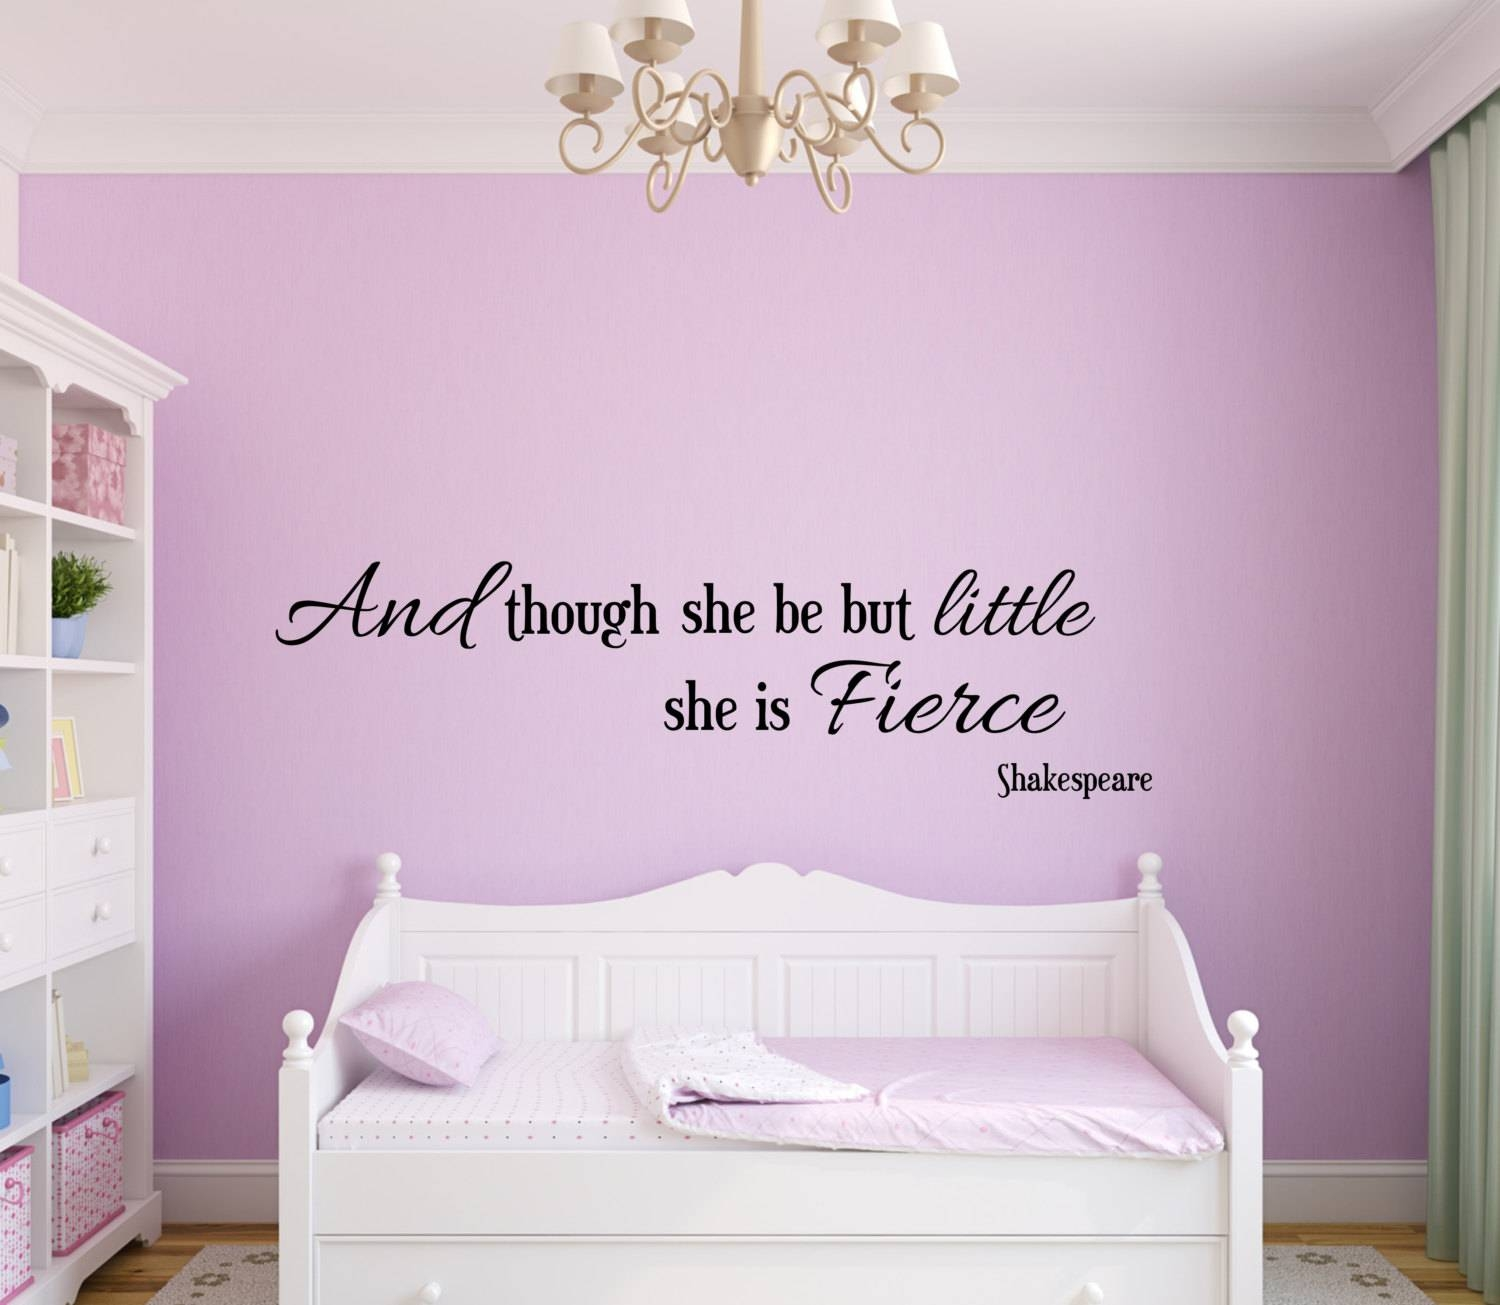 Vinyl Wall Decal And Though She Be But Little She Is Fierce Within Best And Newest Shakespeare Wall Art (View 6 of 20)